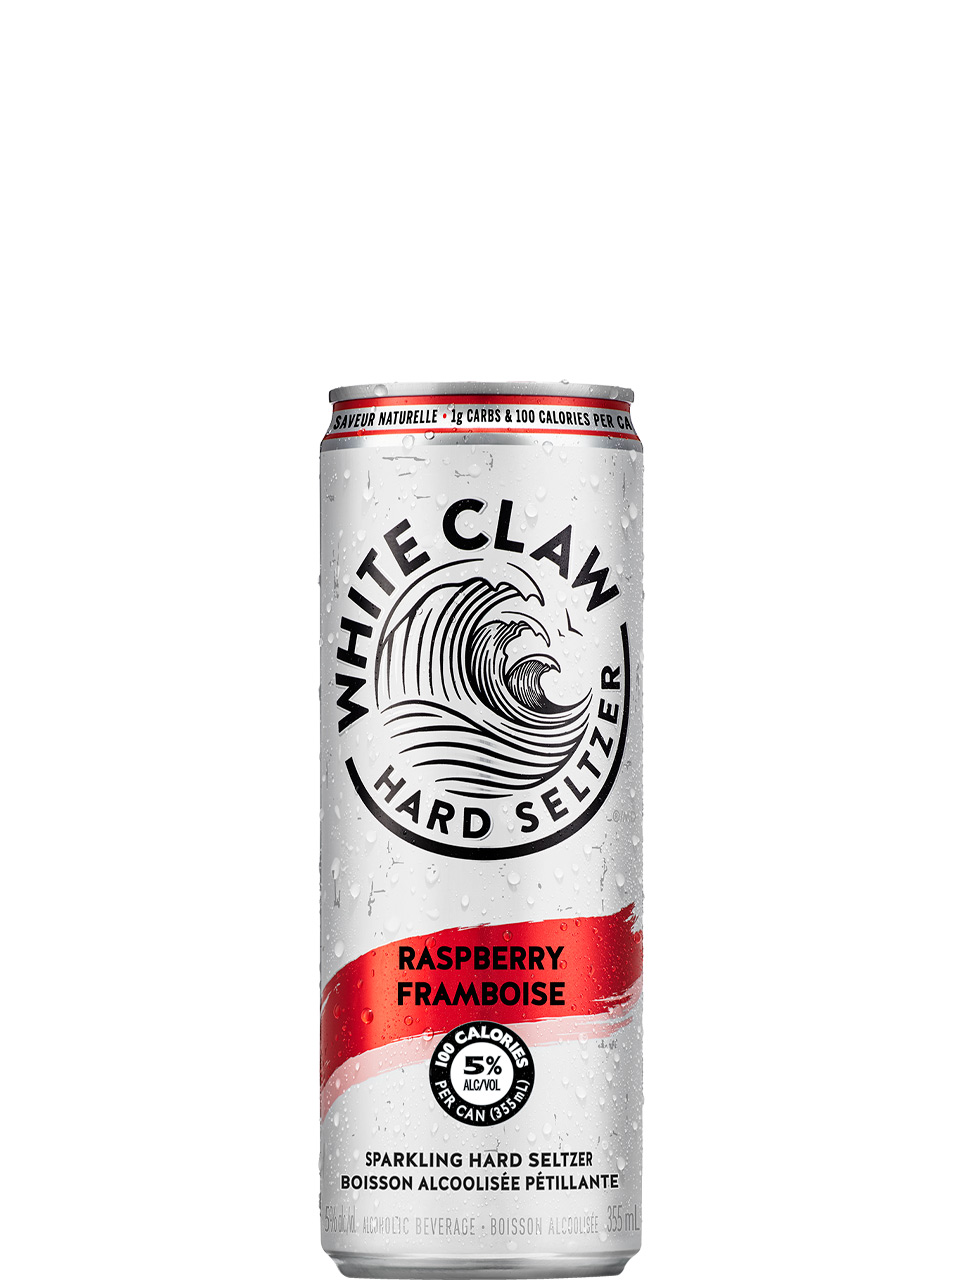 White Claw Raspberry 6 Pack Cans